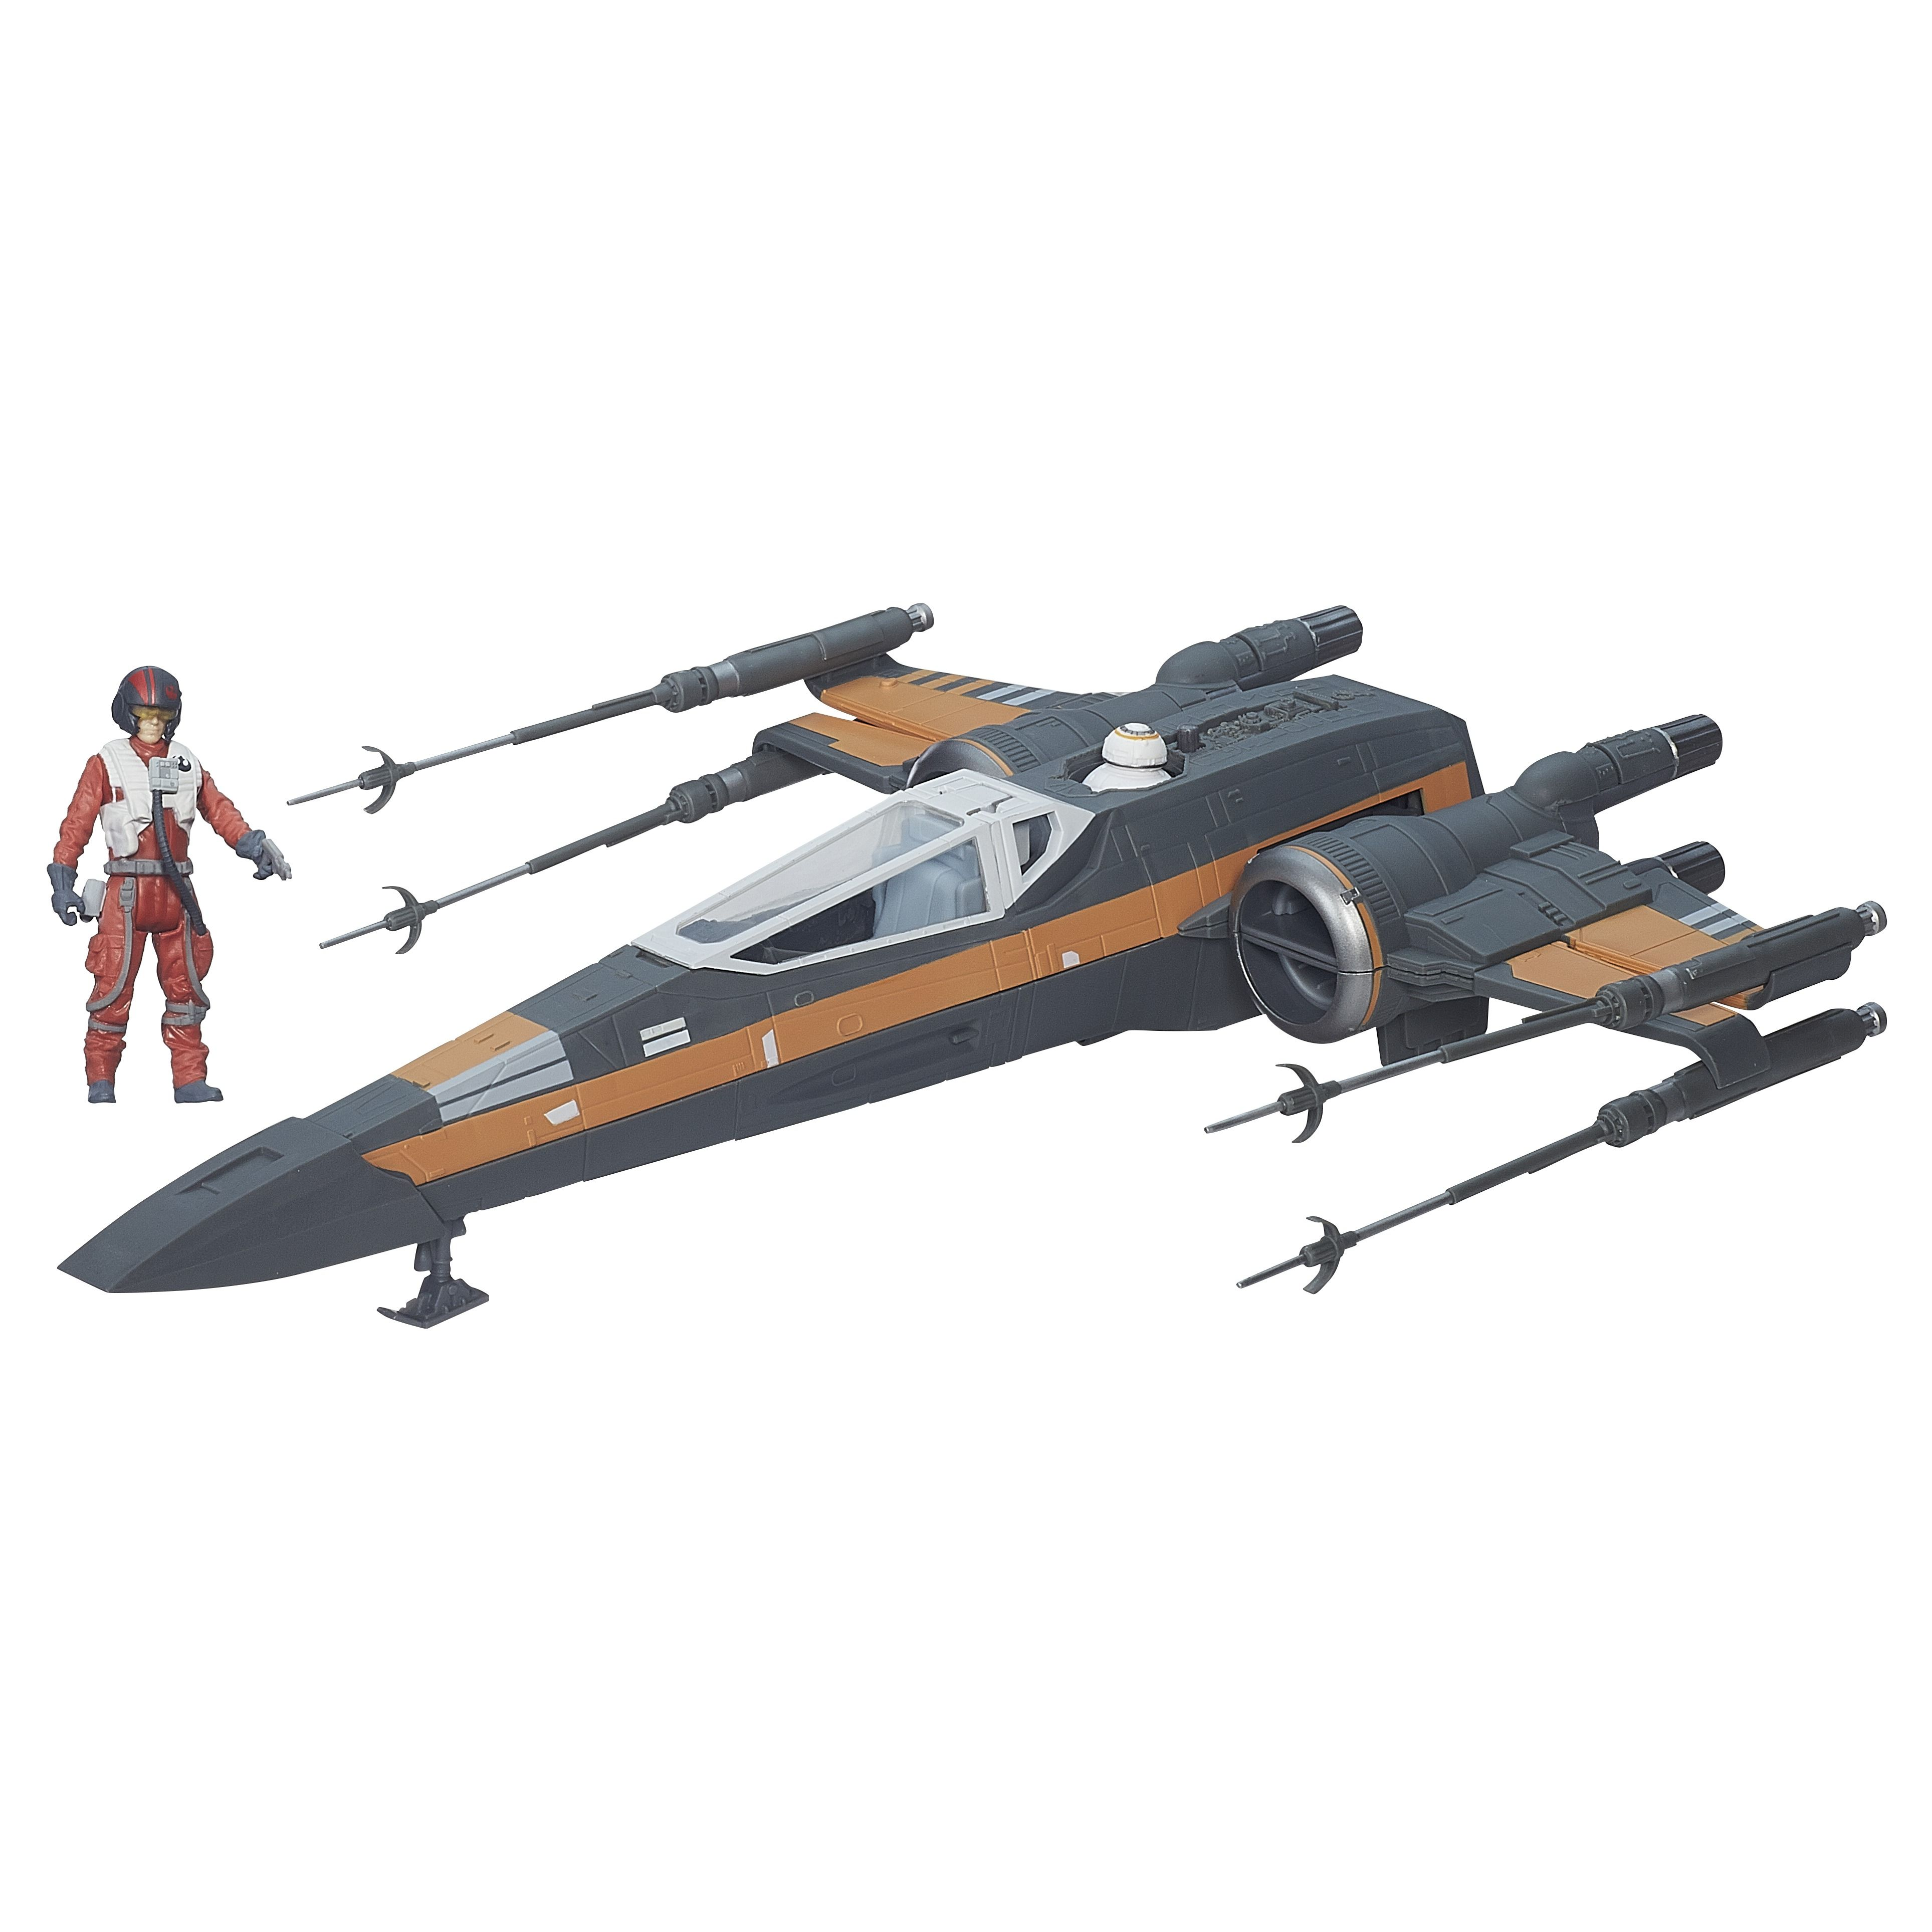 Star Wars: The Force Awakens Toy Images | Collider